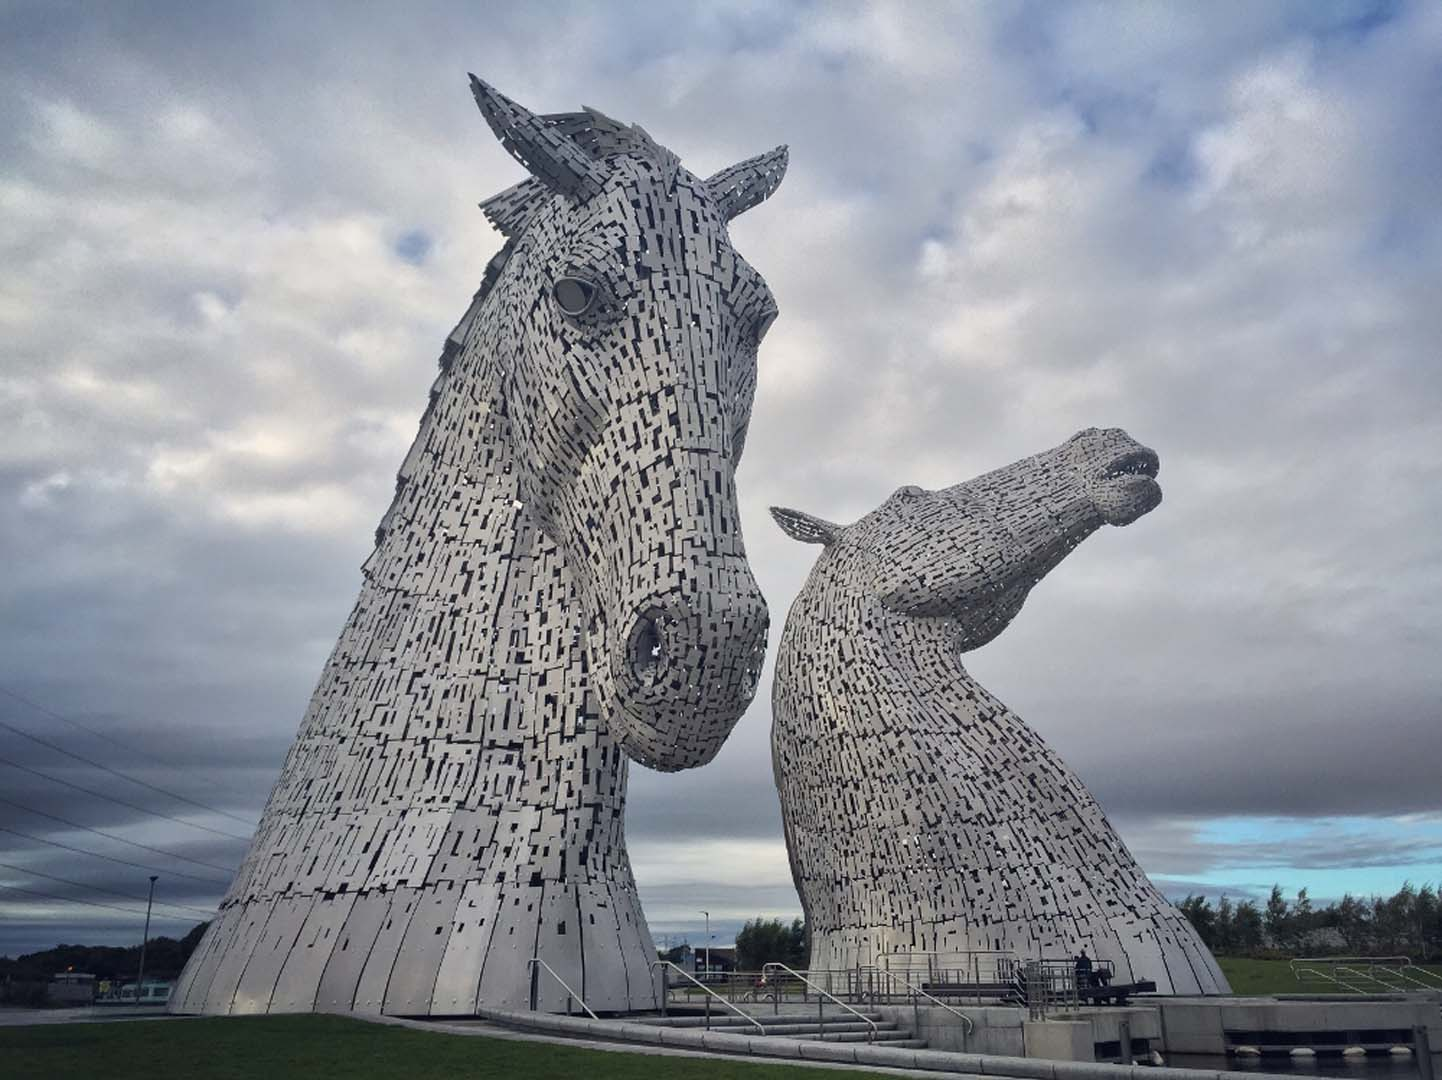 The Kelpies at Helix Park